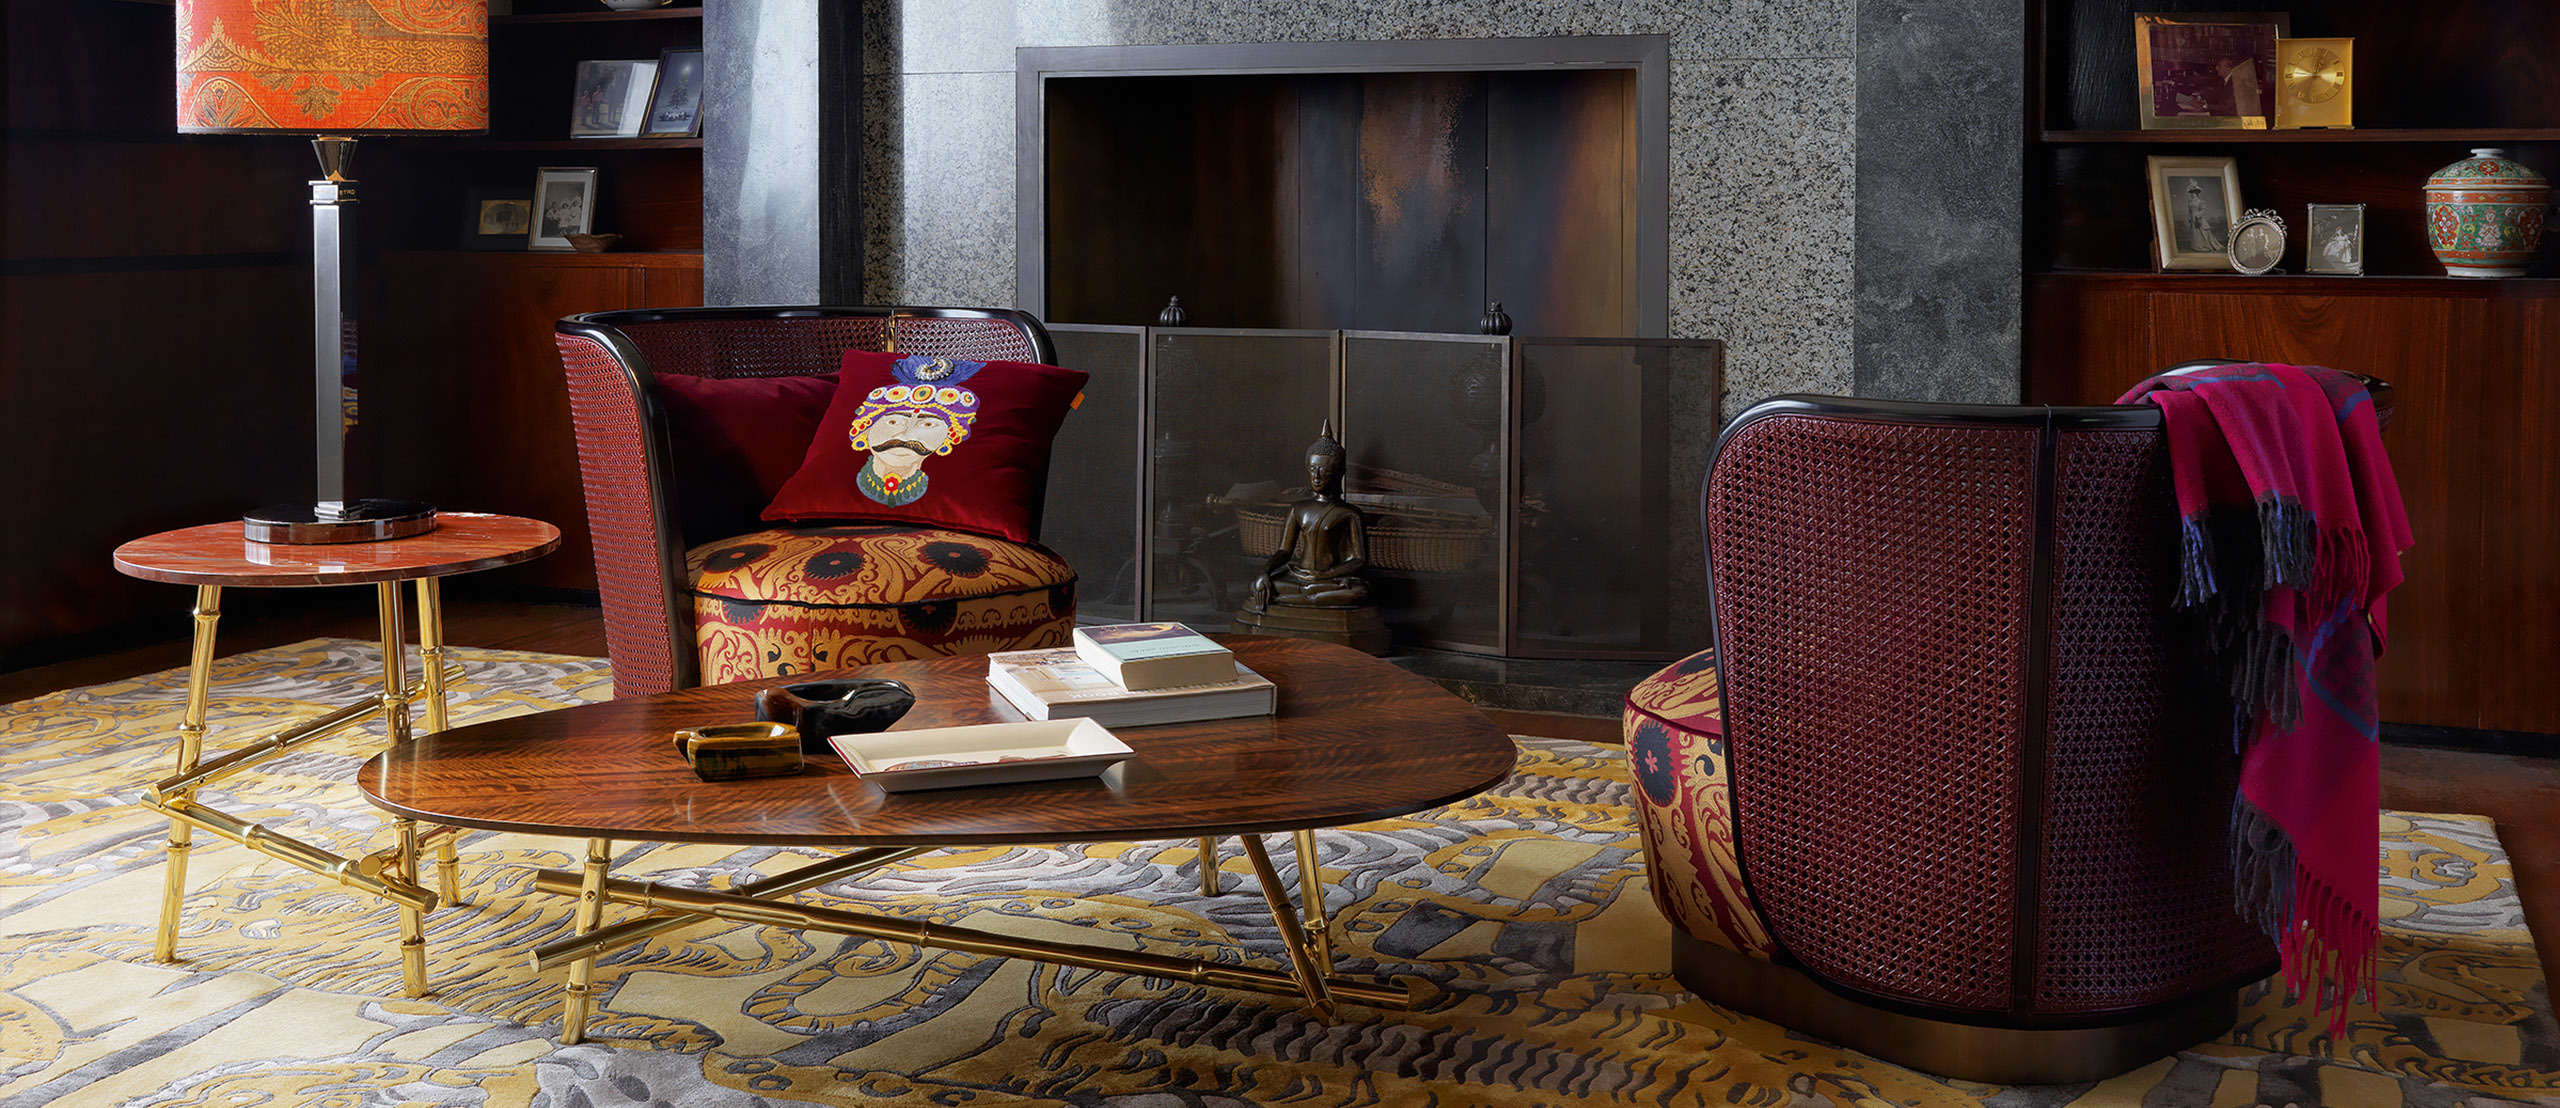 Etro Home - FOCUS ON - A series of poetic images which enhance the collection.